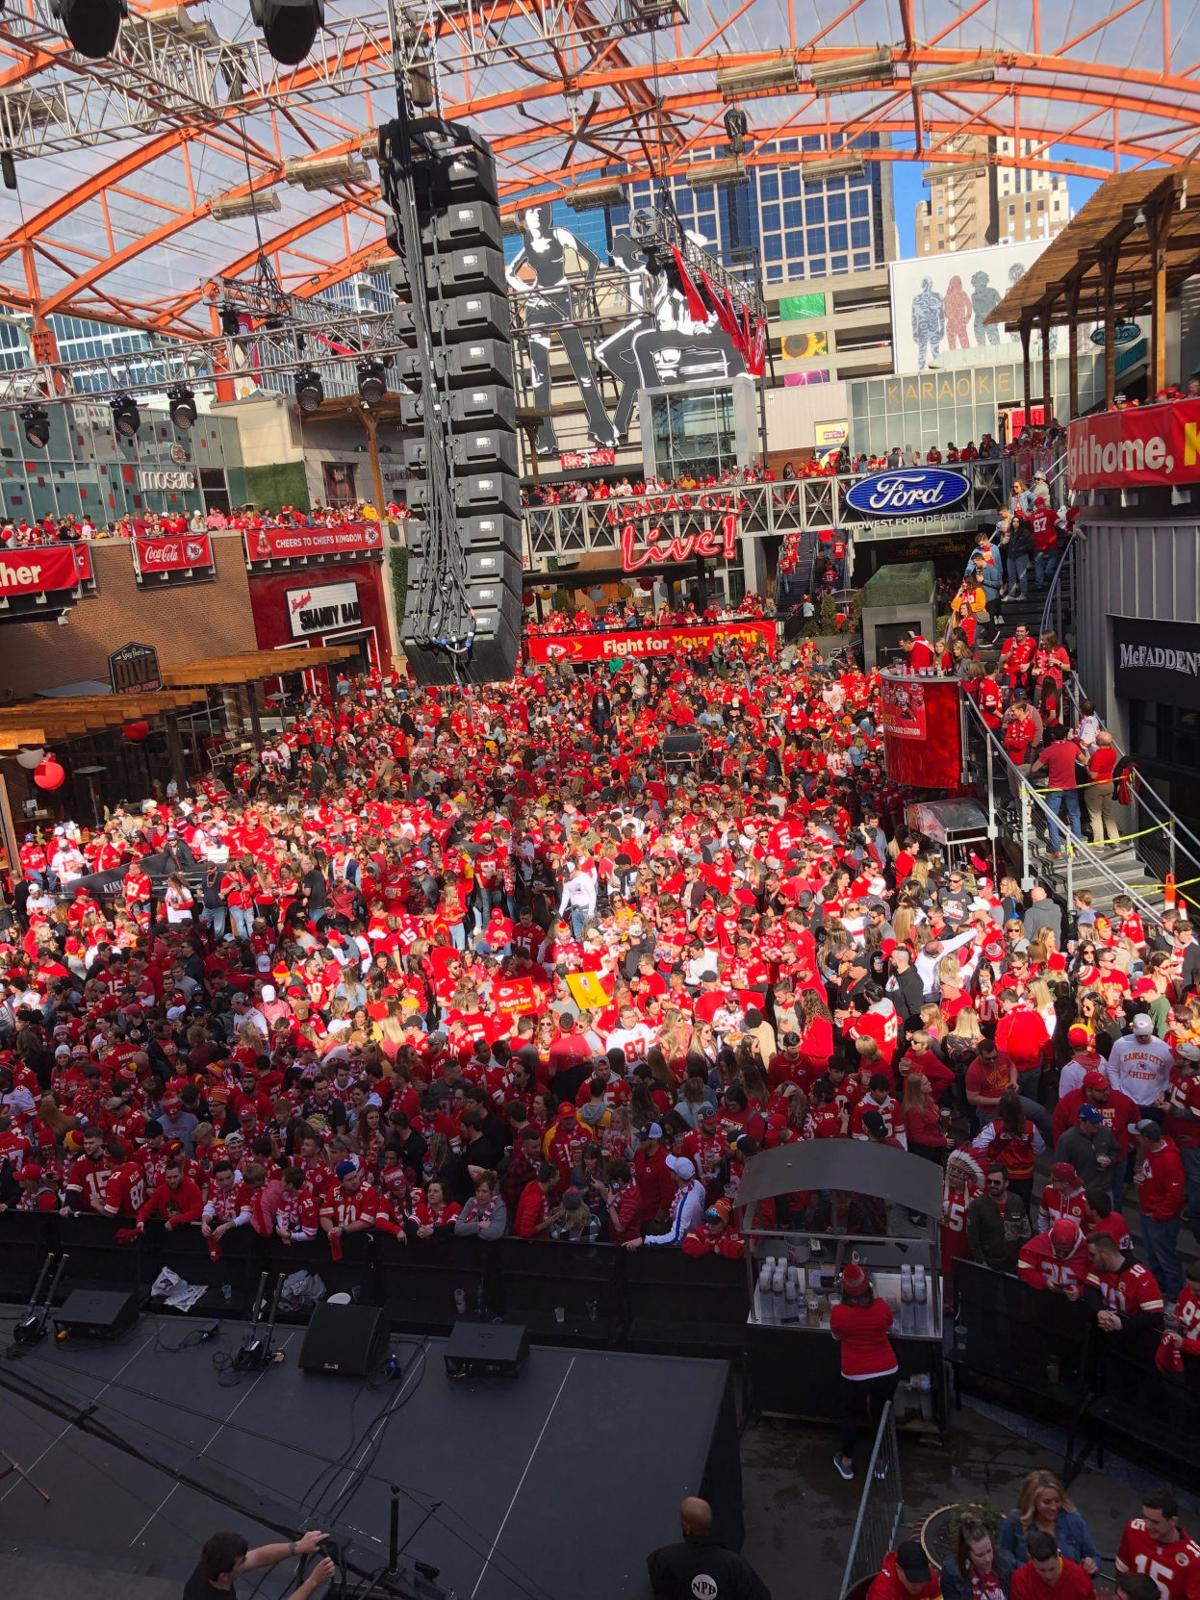 A sea of fans sporting Kansas City Chiefs apparel flood the Power and Light district in Kansas City